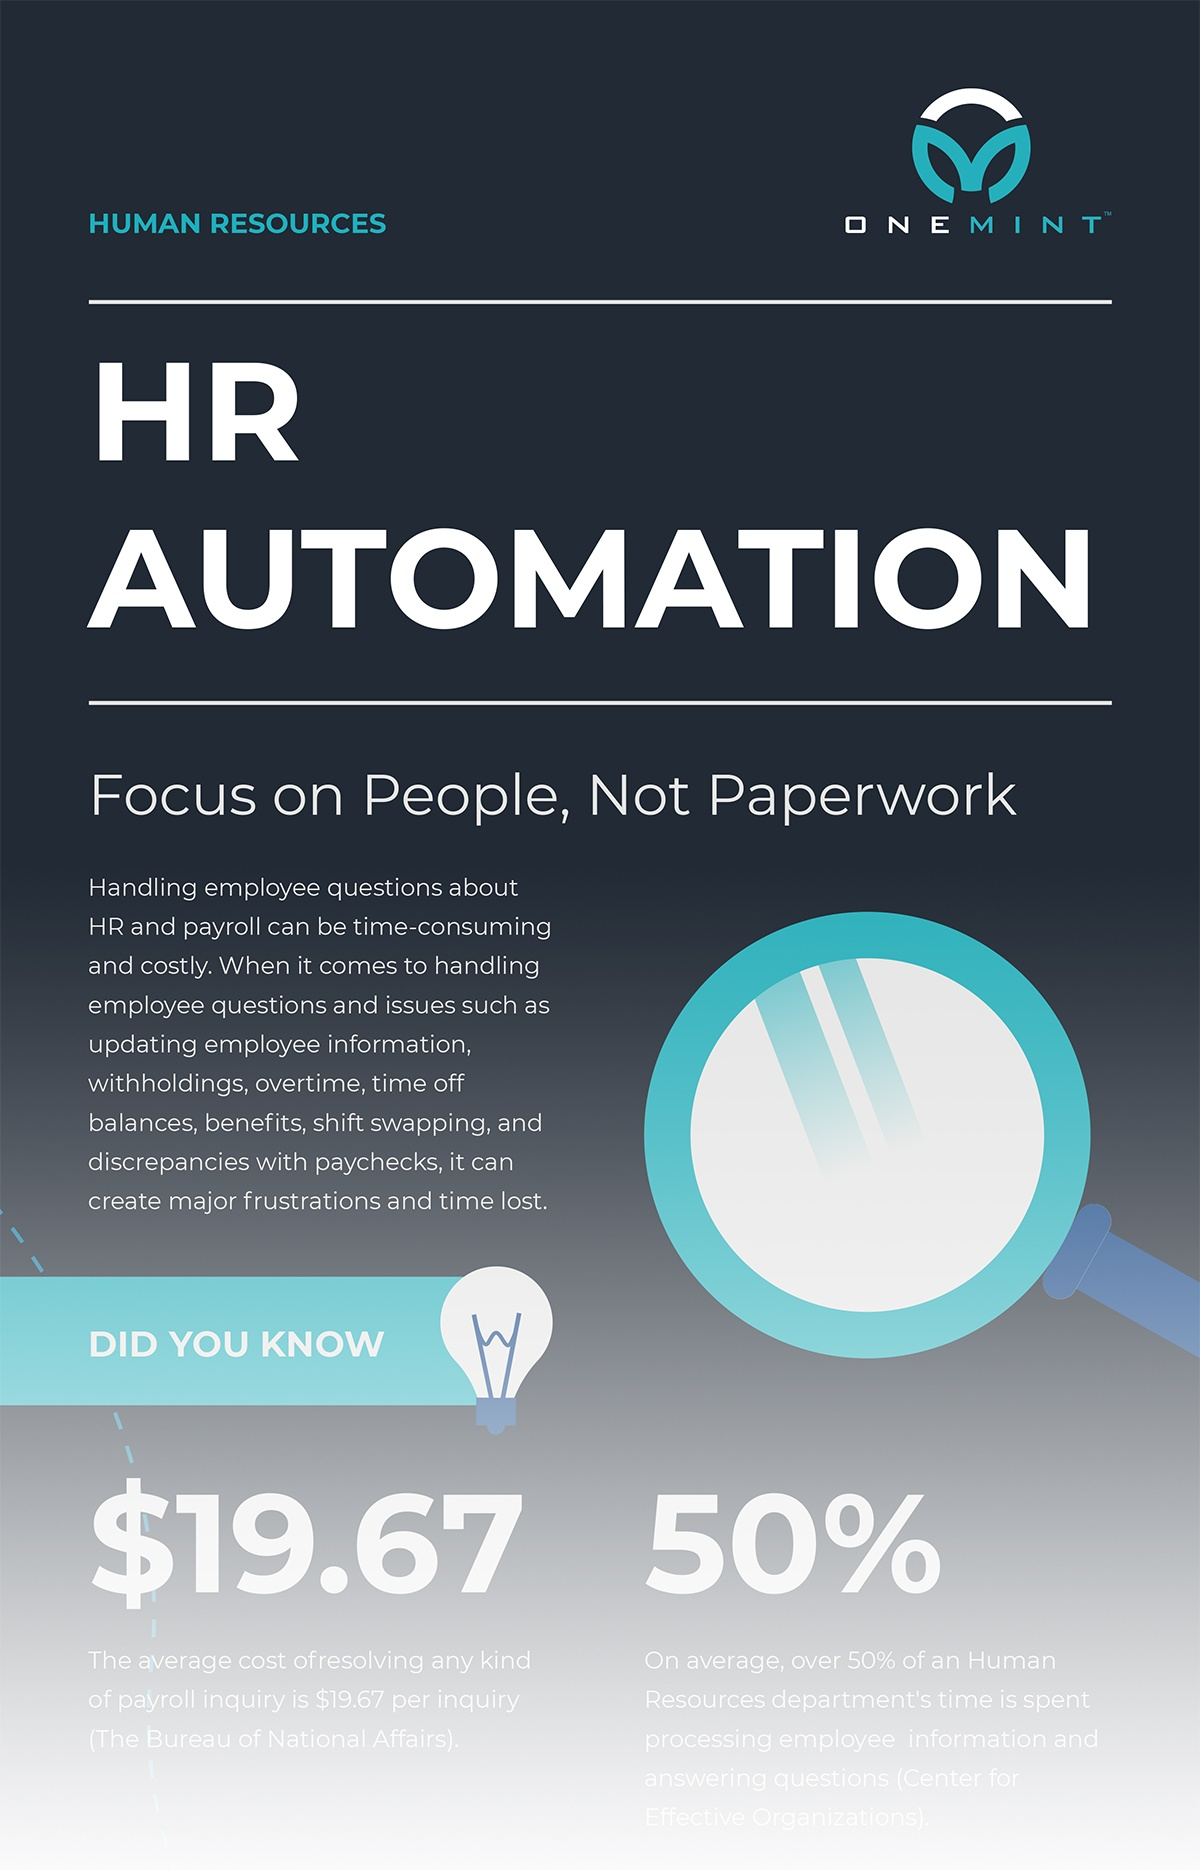 hr automation infographic